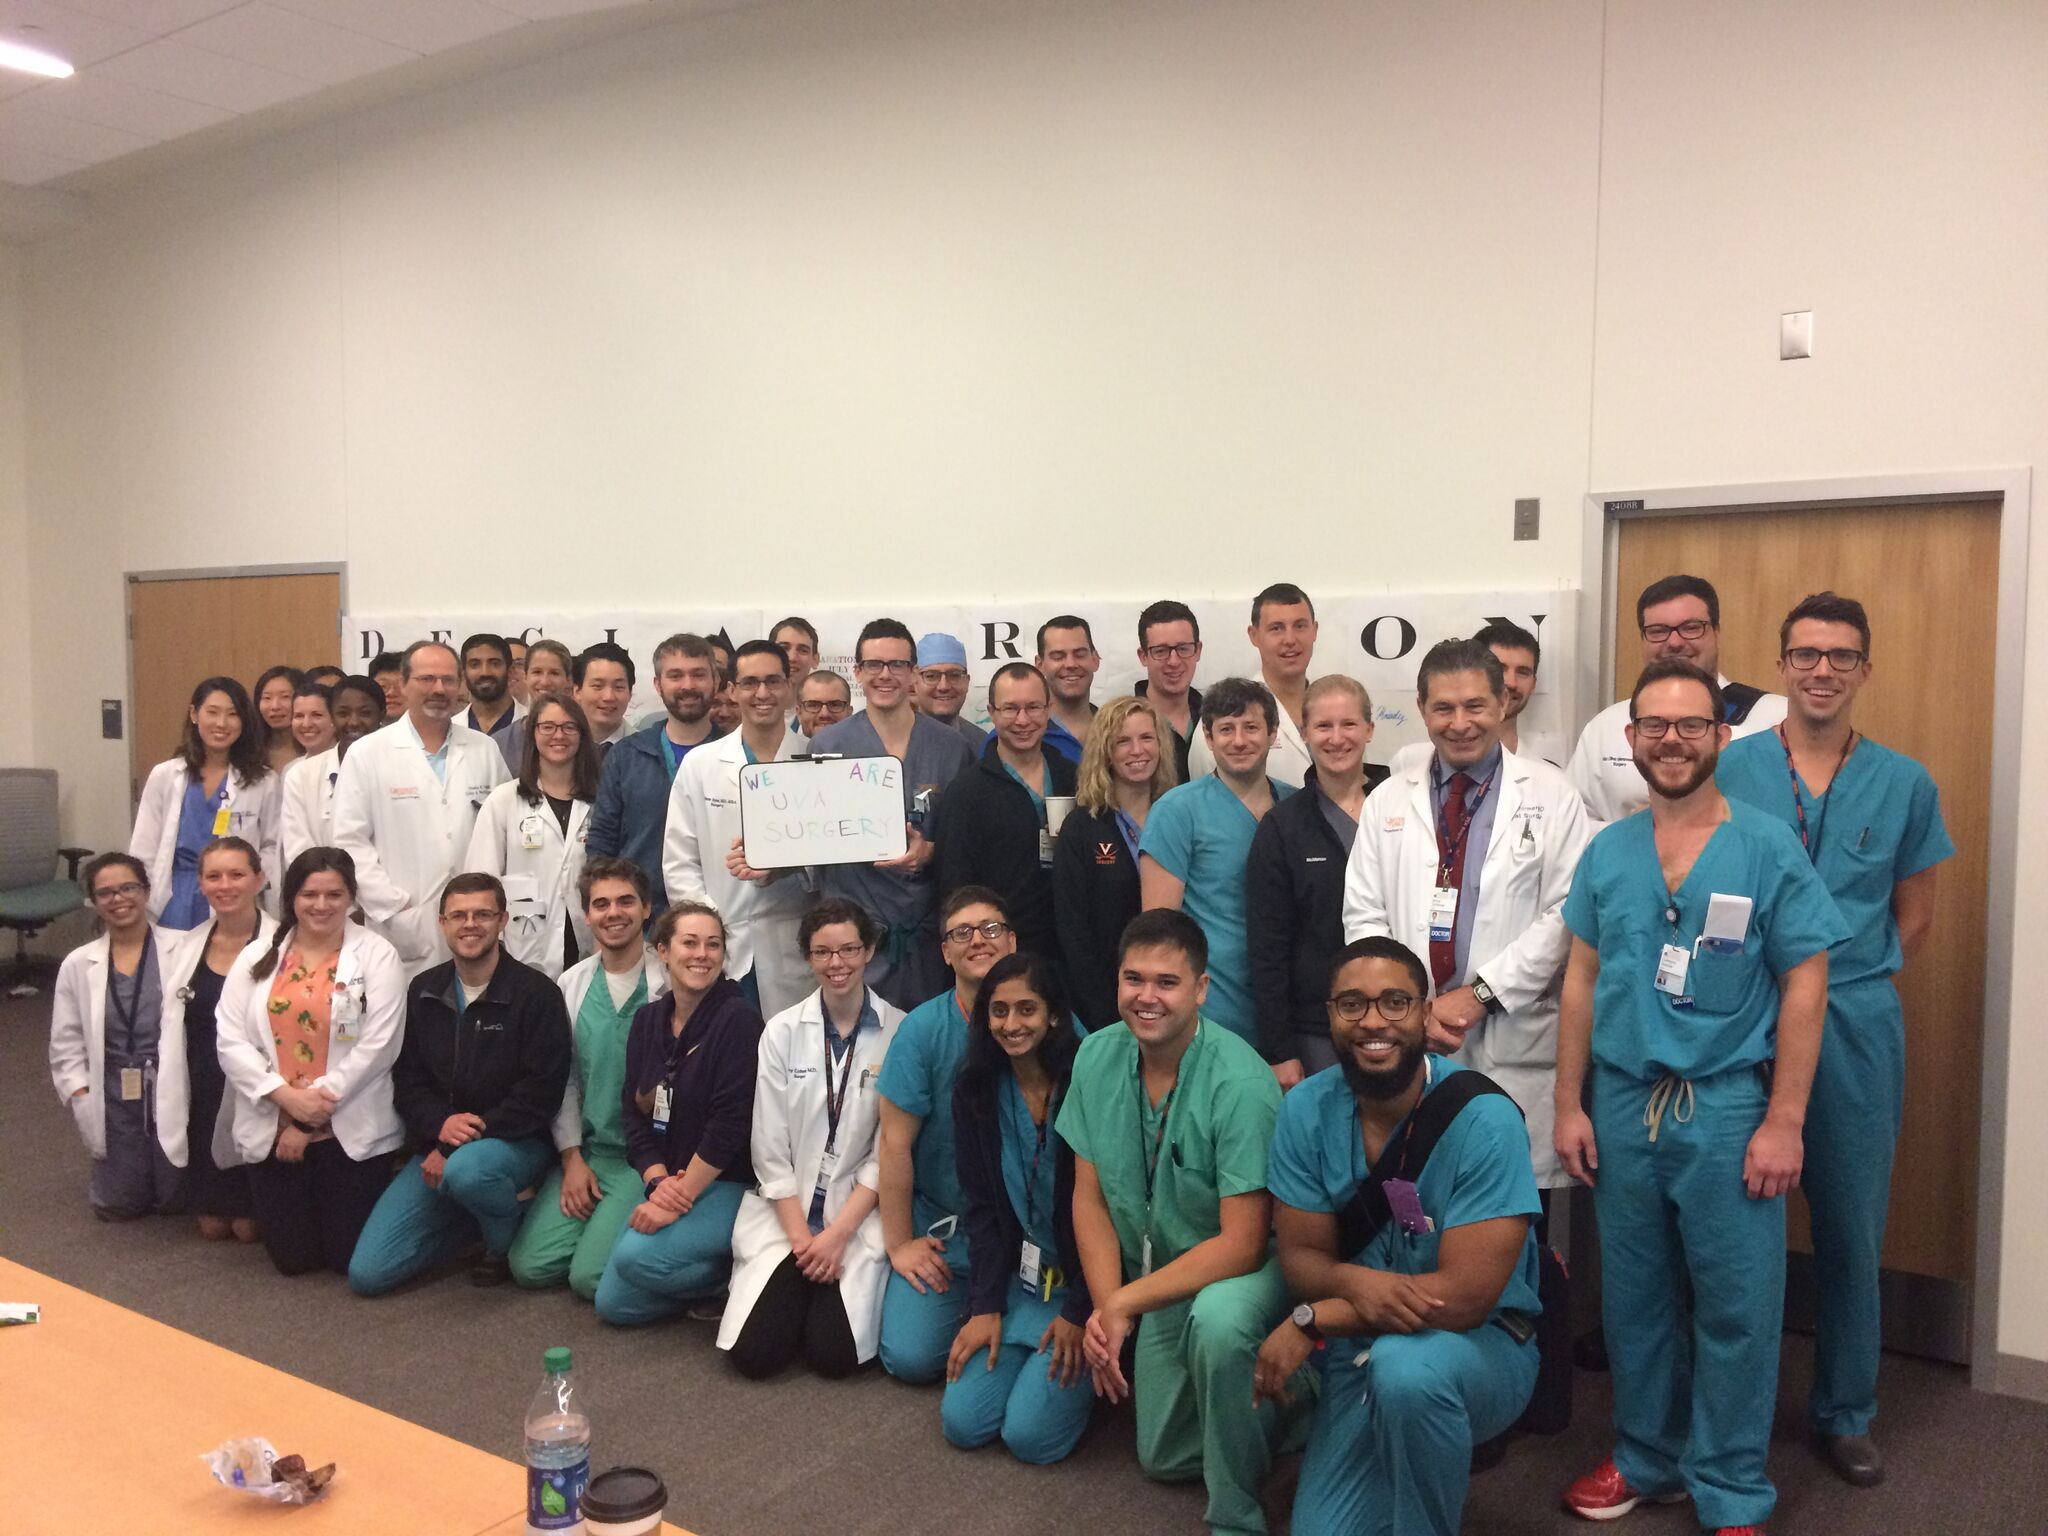 Photo: UVA School of Medicine, Surgical Residency group photo